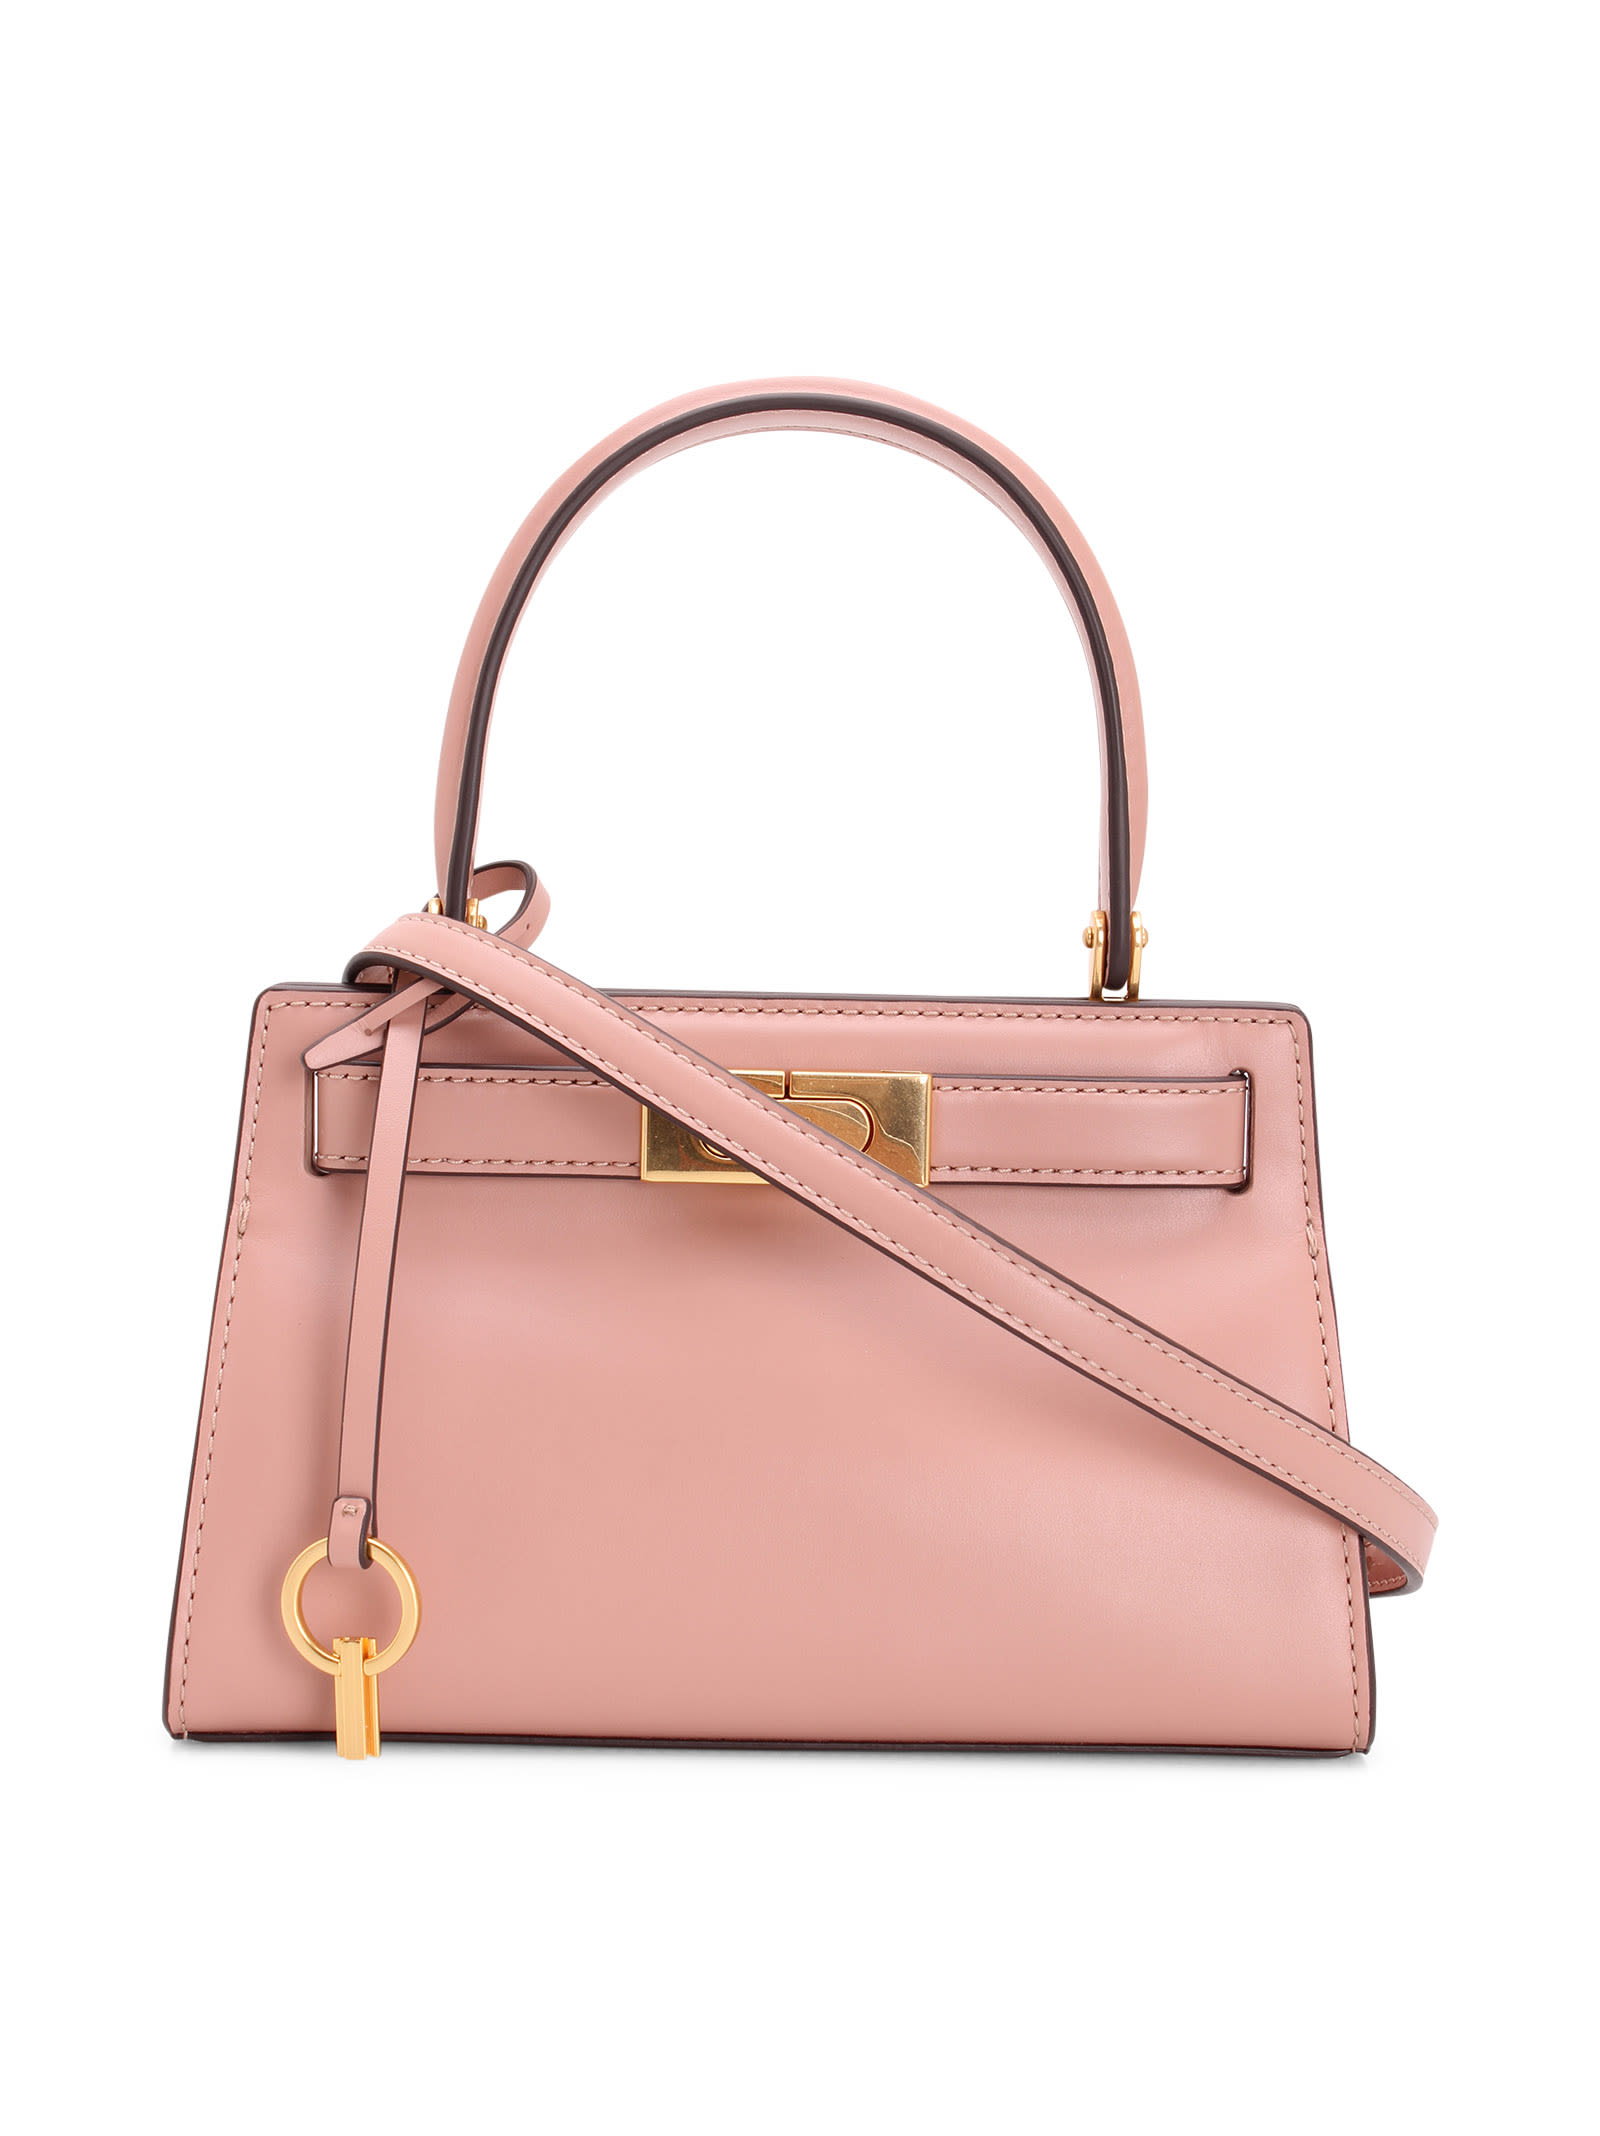 Tory Burch LEE RADZIWILL LEATHER TOTE BAG